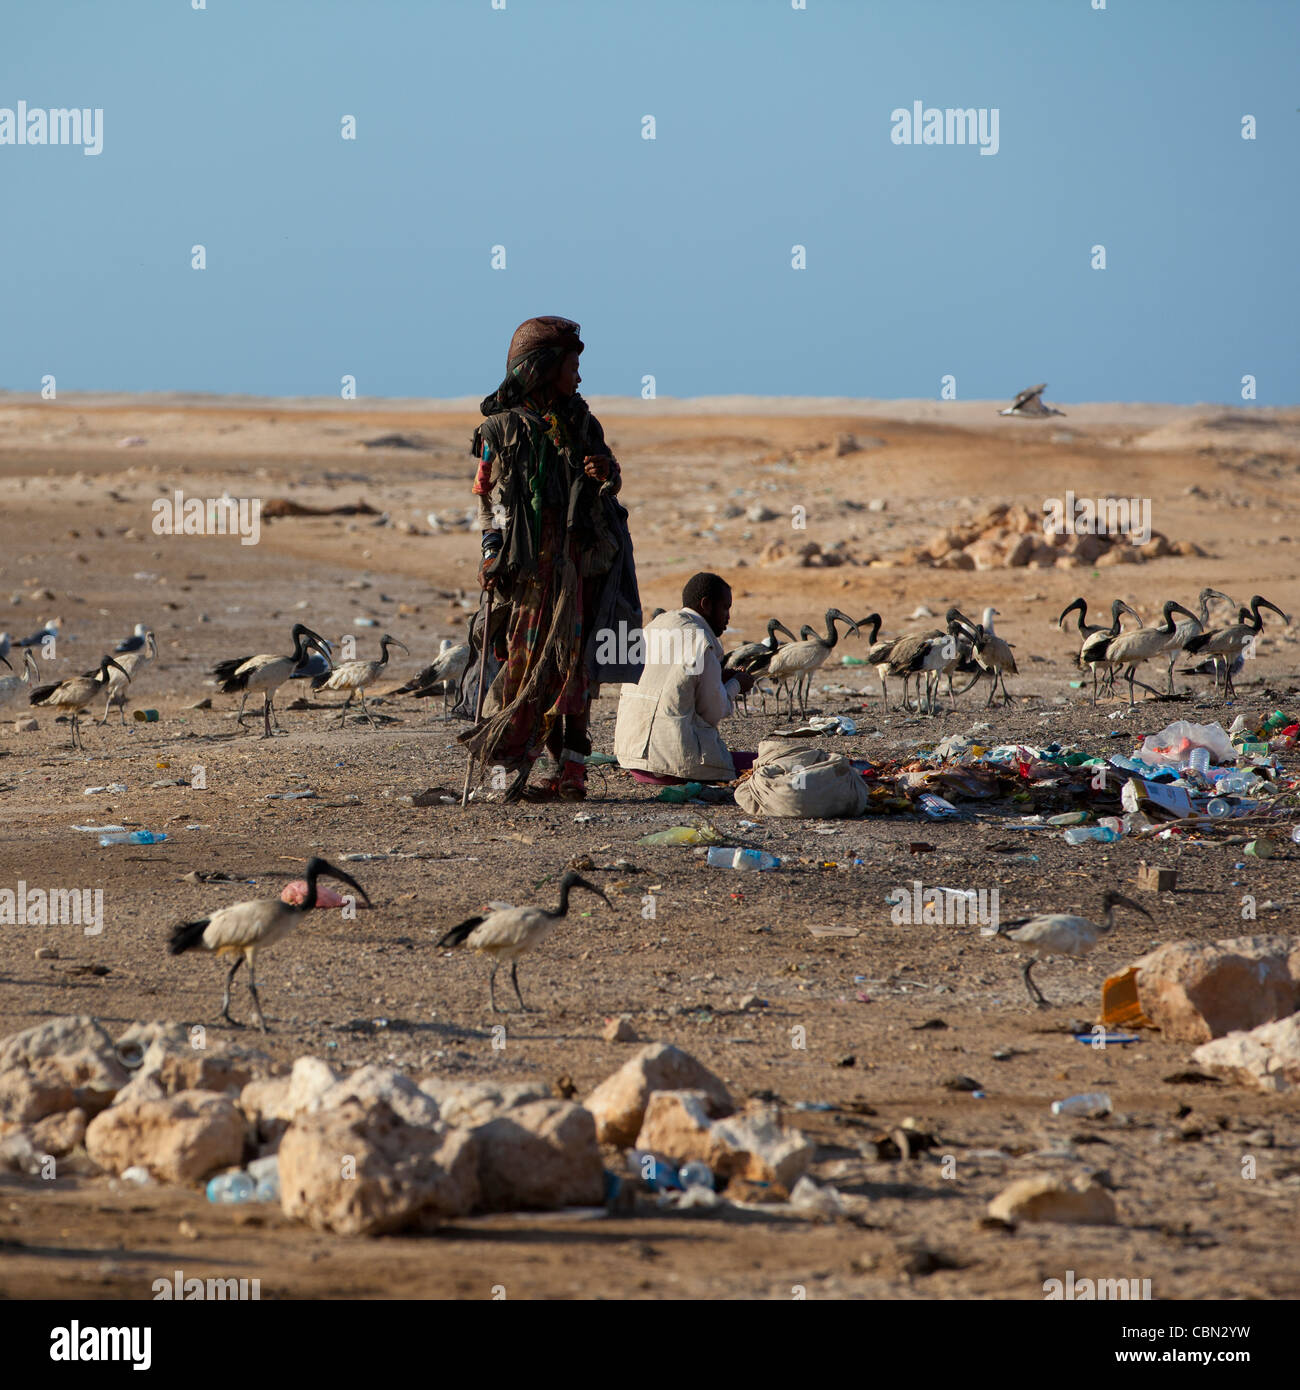 Wasteland Two Slumdogs And Birds In Berbera Somaliland - Stock Image